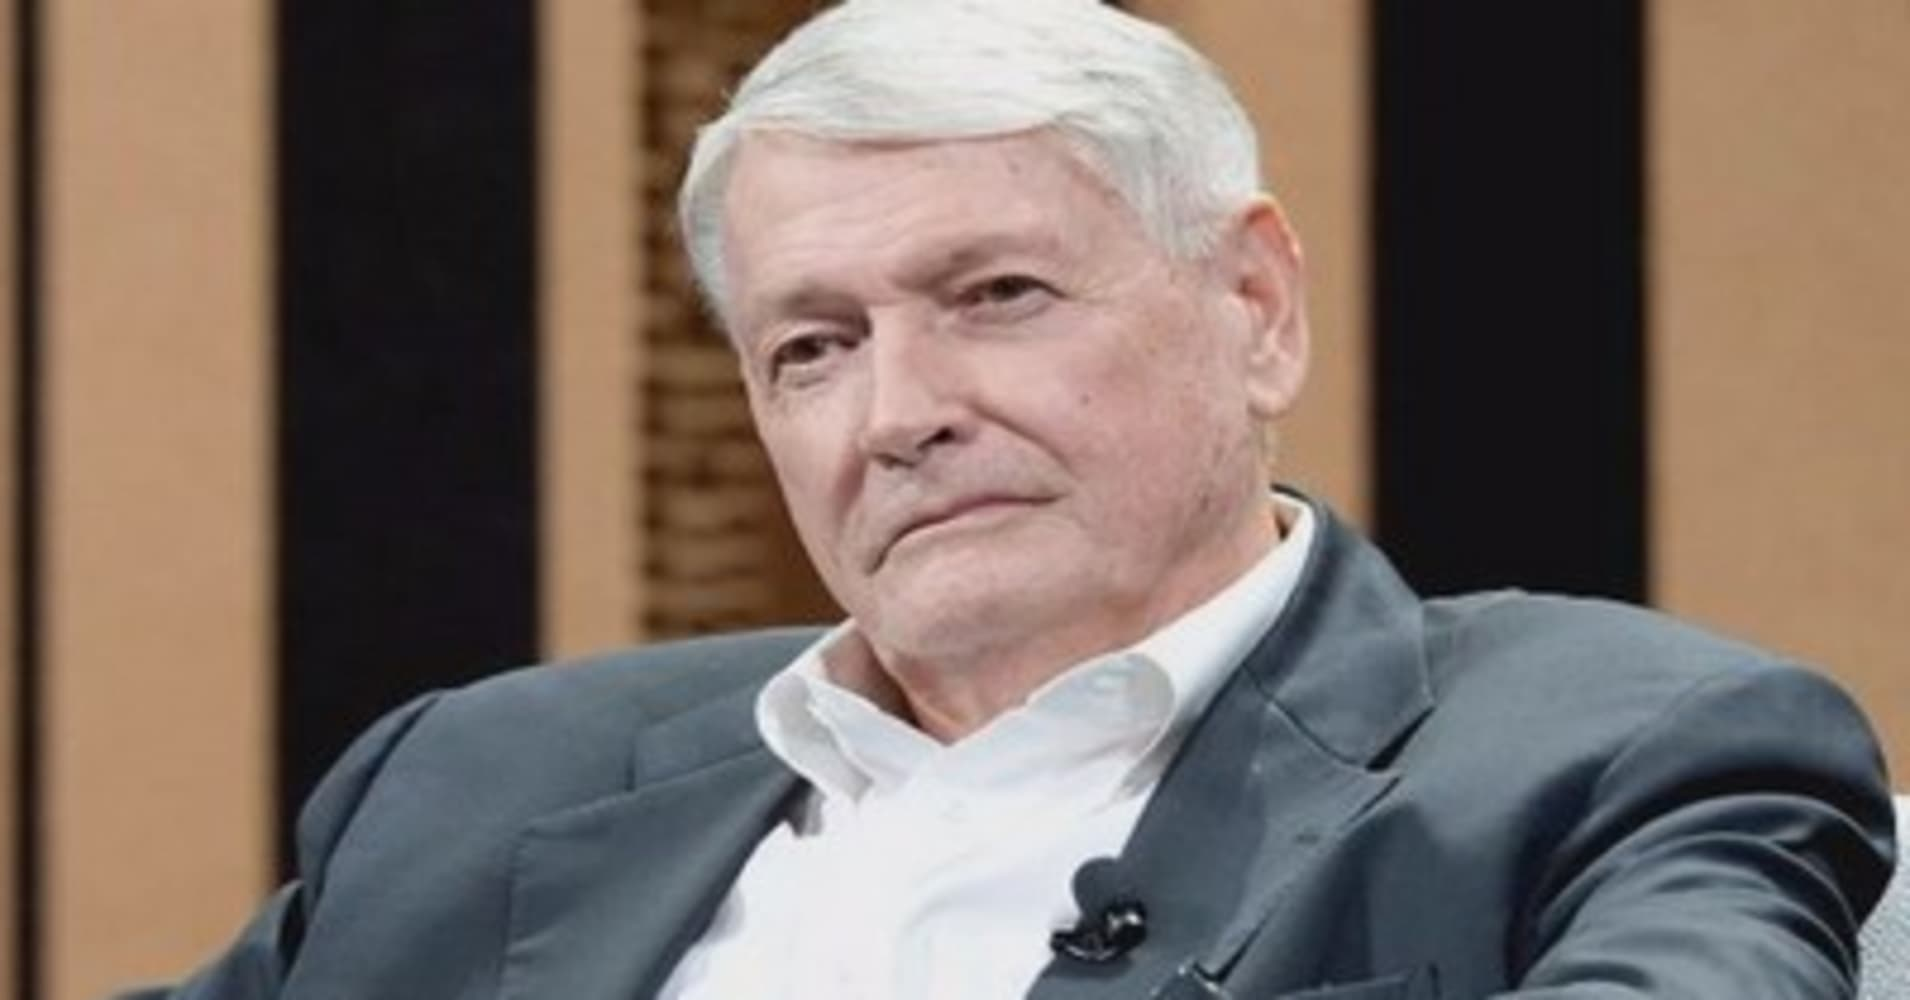 John Malone says Amazon is a Death Star